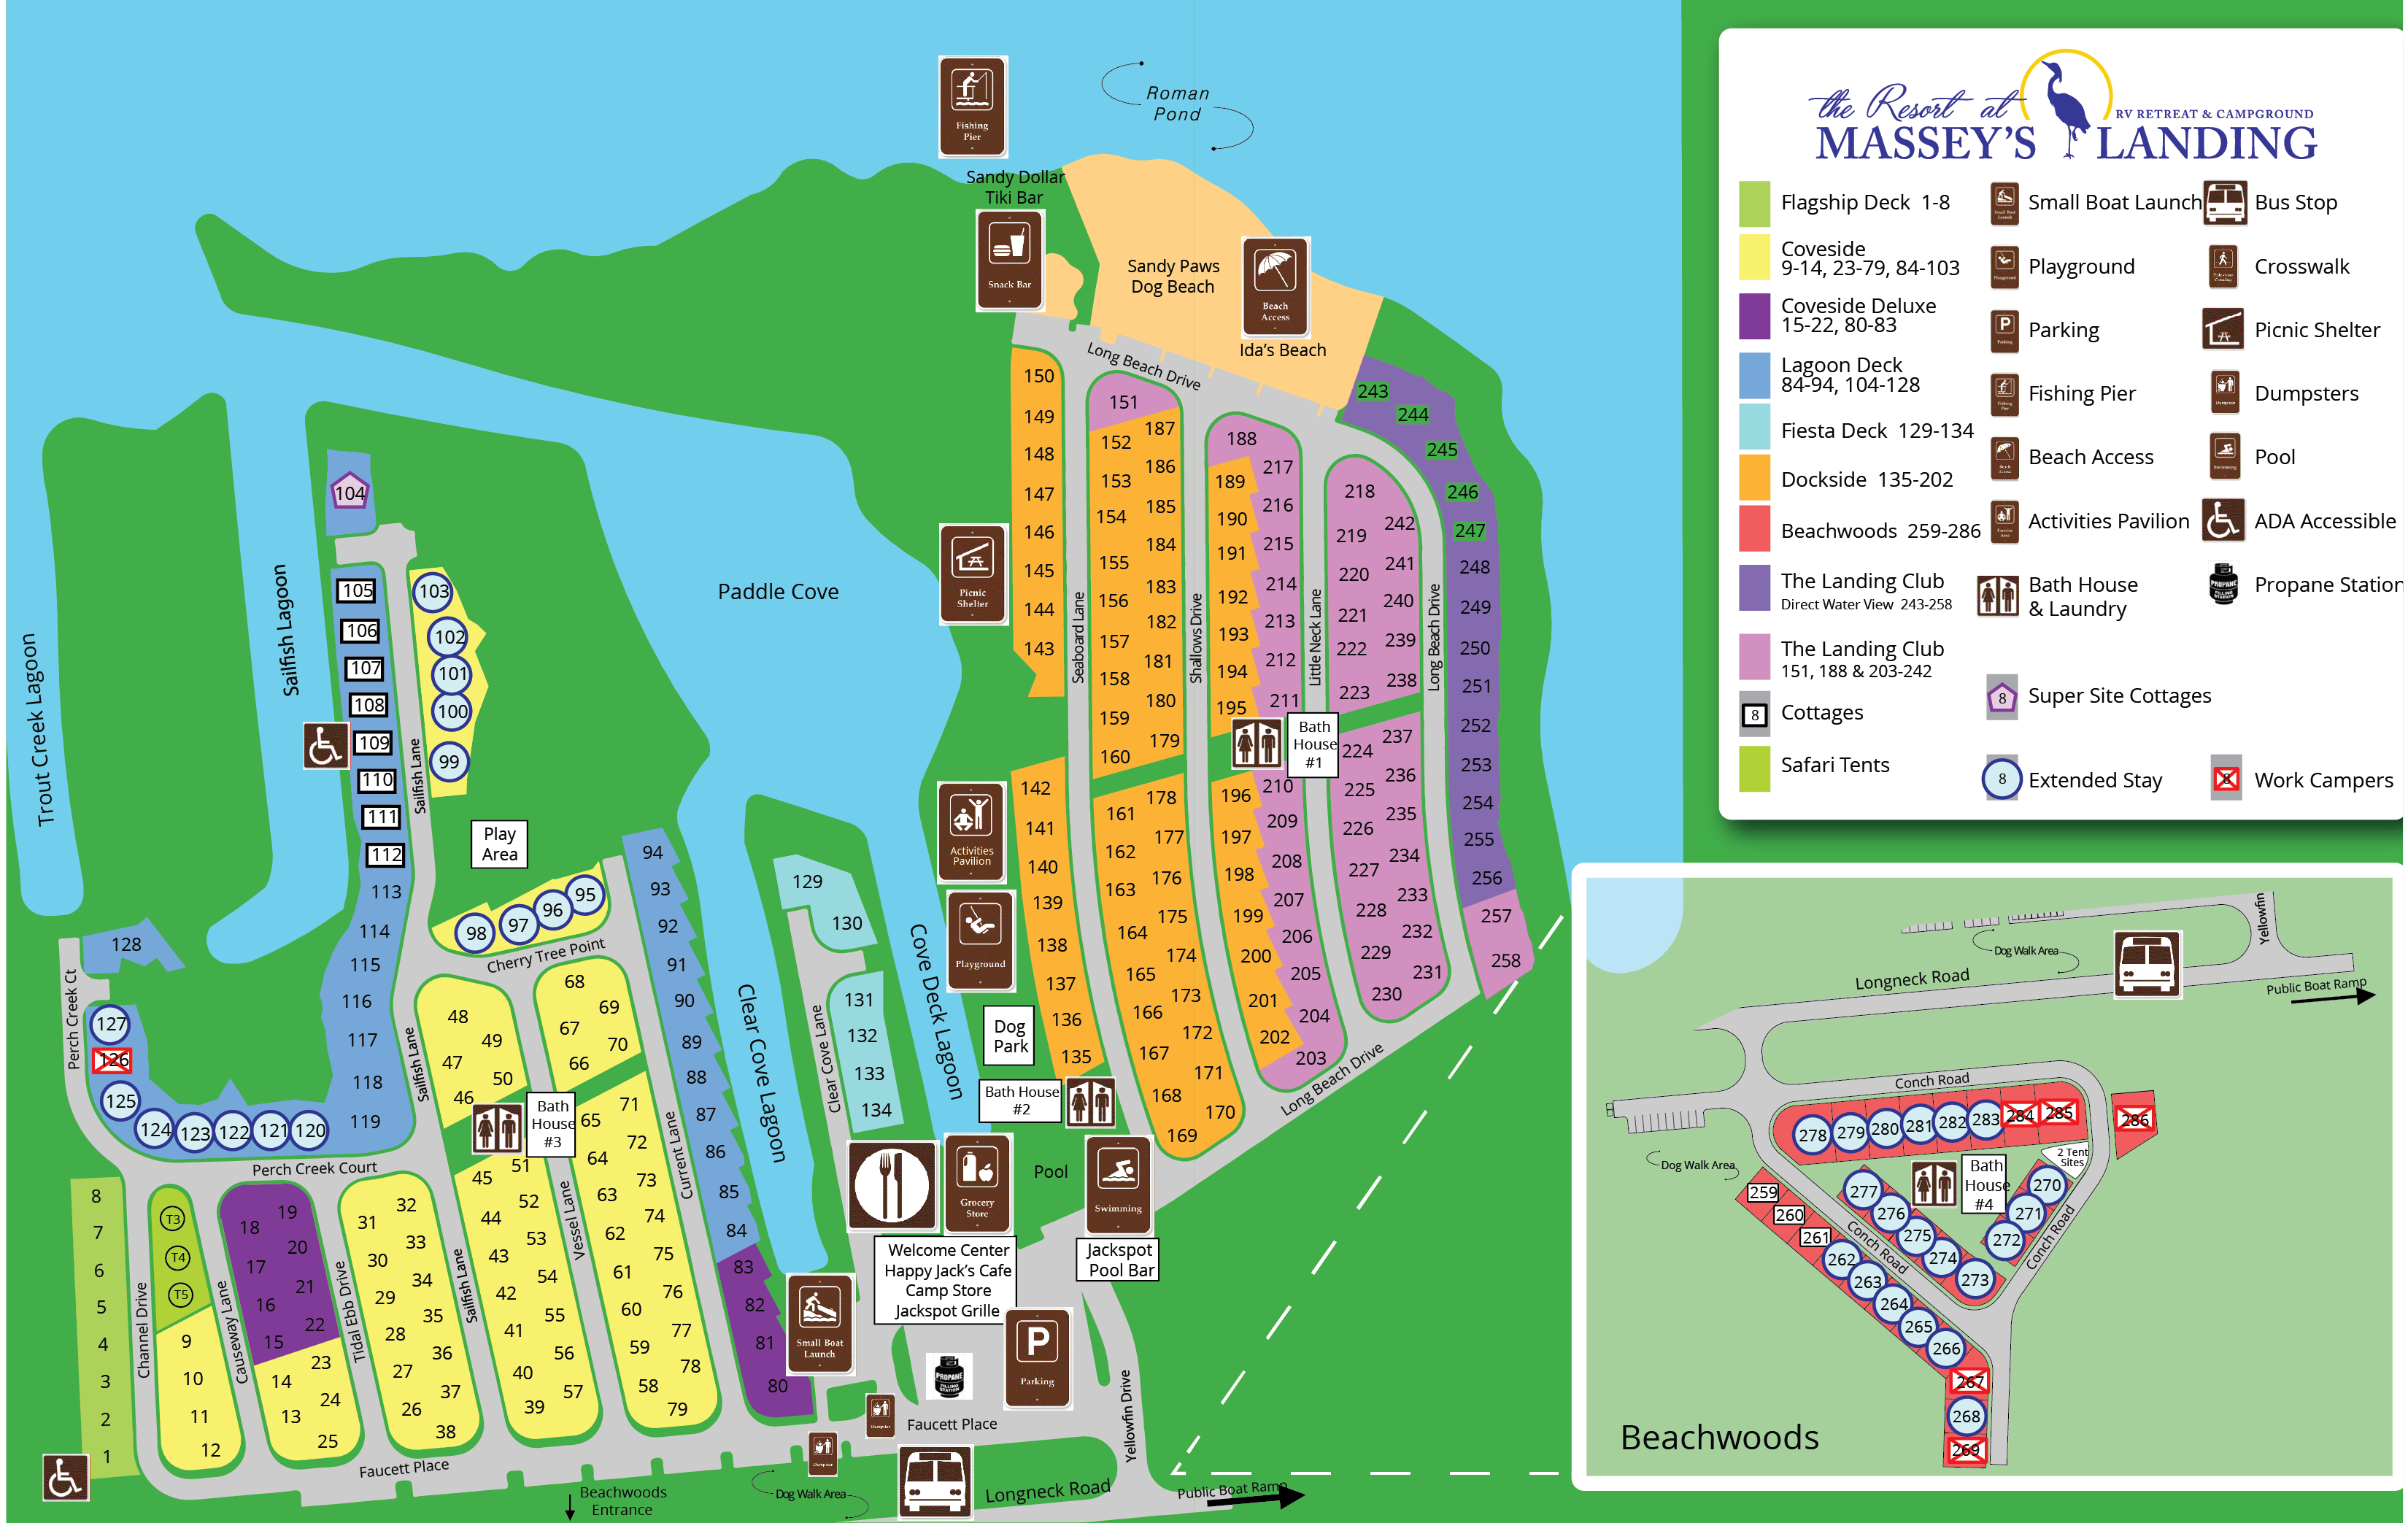 The Resort at Massey's Landing Site Map